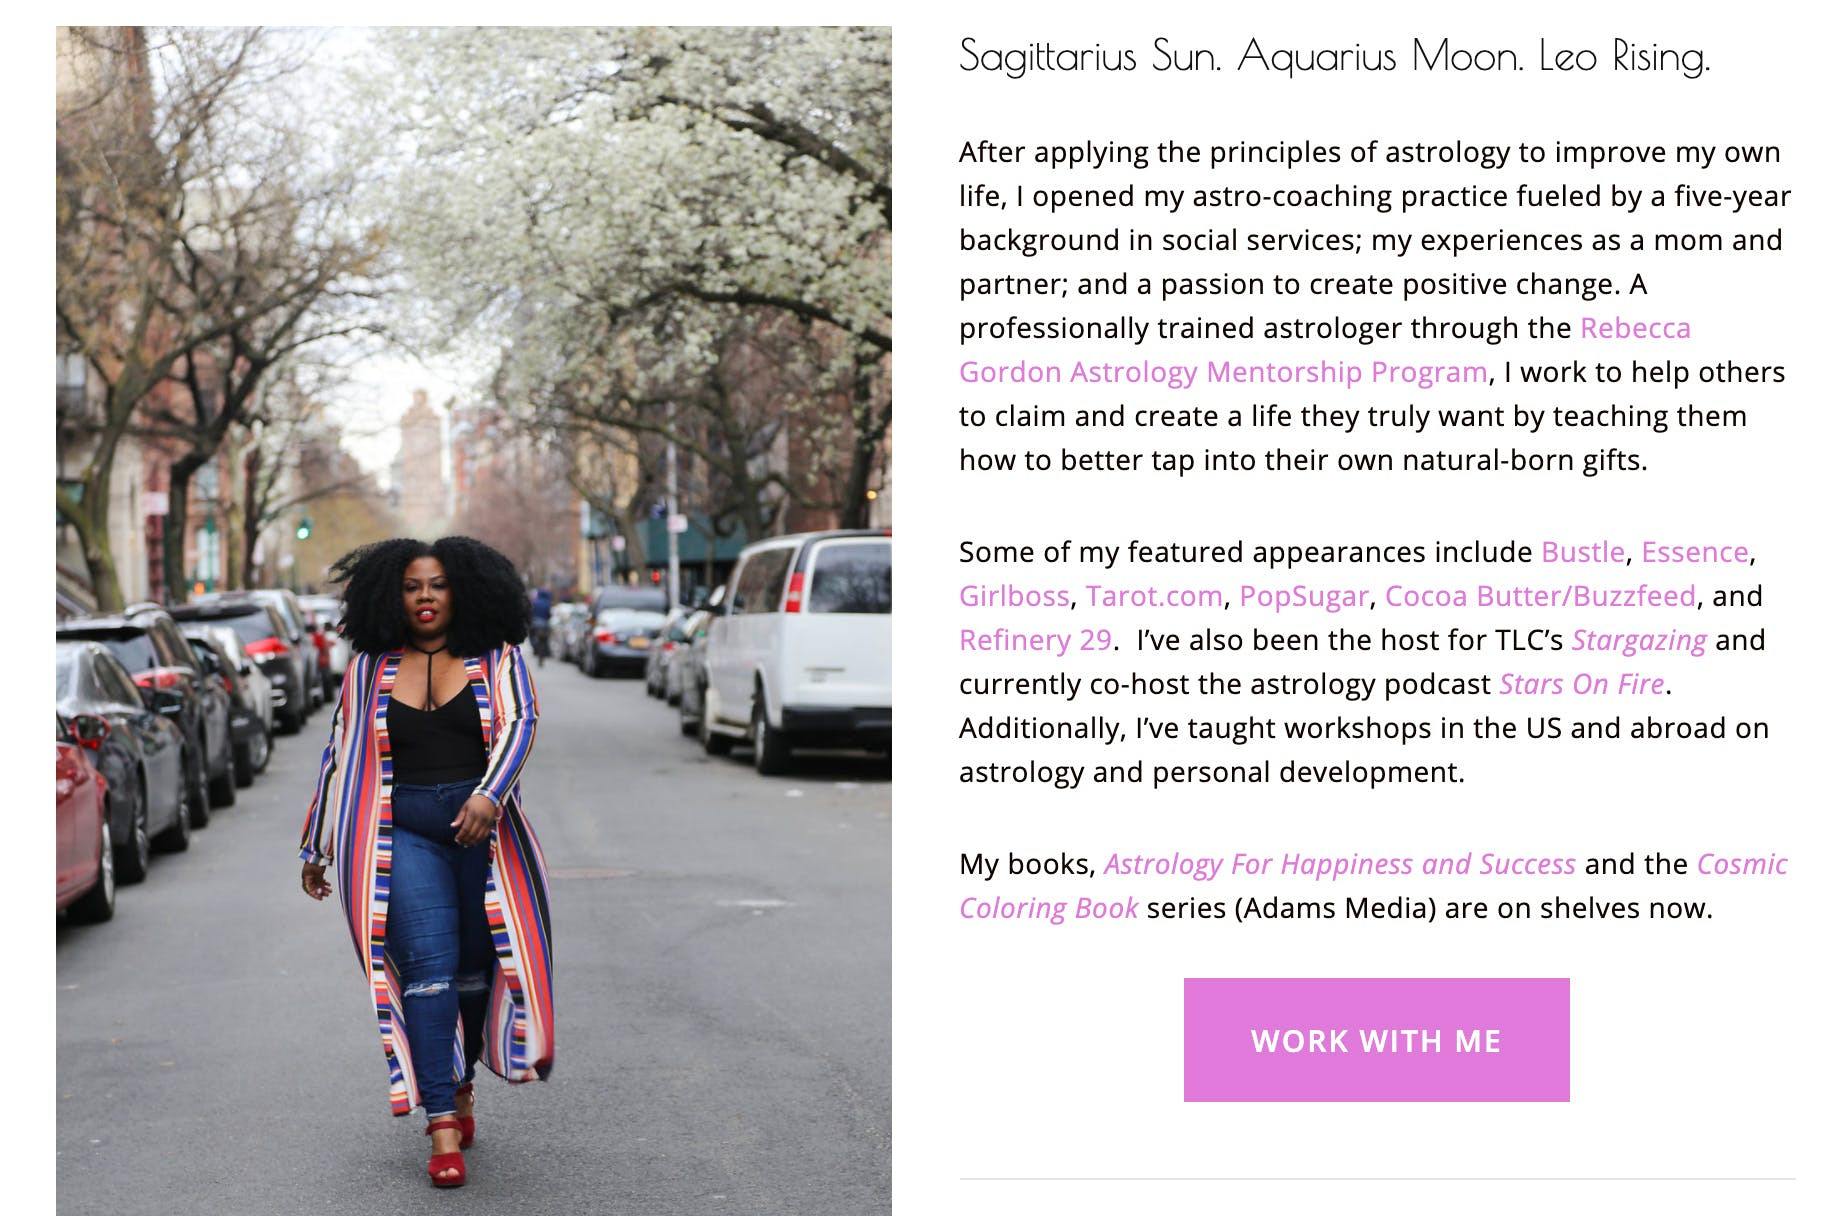 Photo of Mecca's biography page. Features an image of her walking down the street on the left, and a short biography explaining how and why she got into astrology on the right.